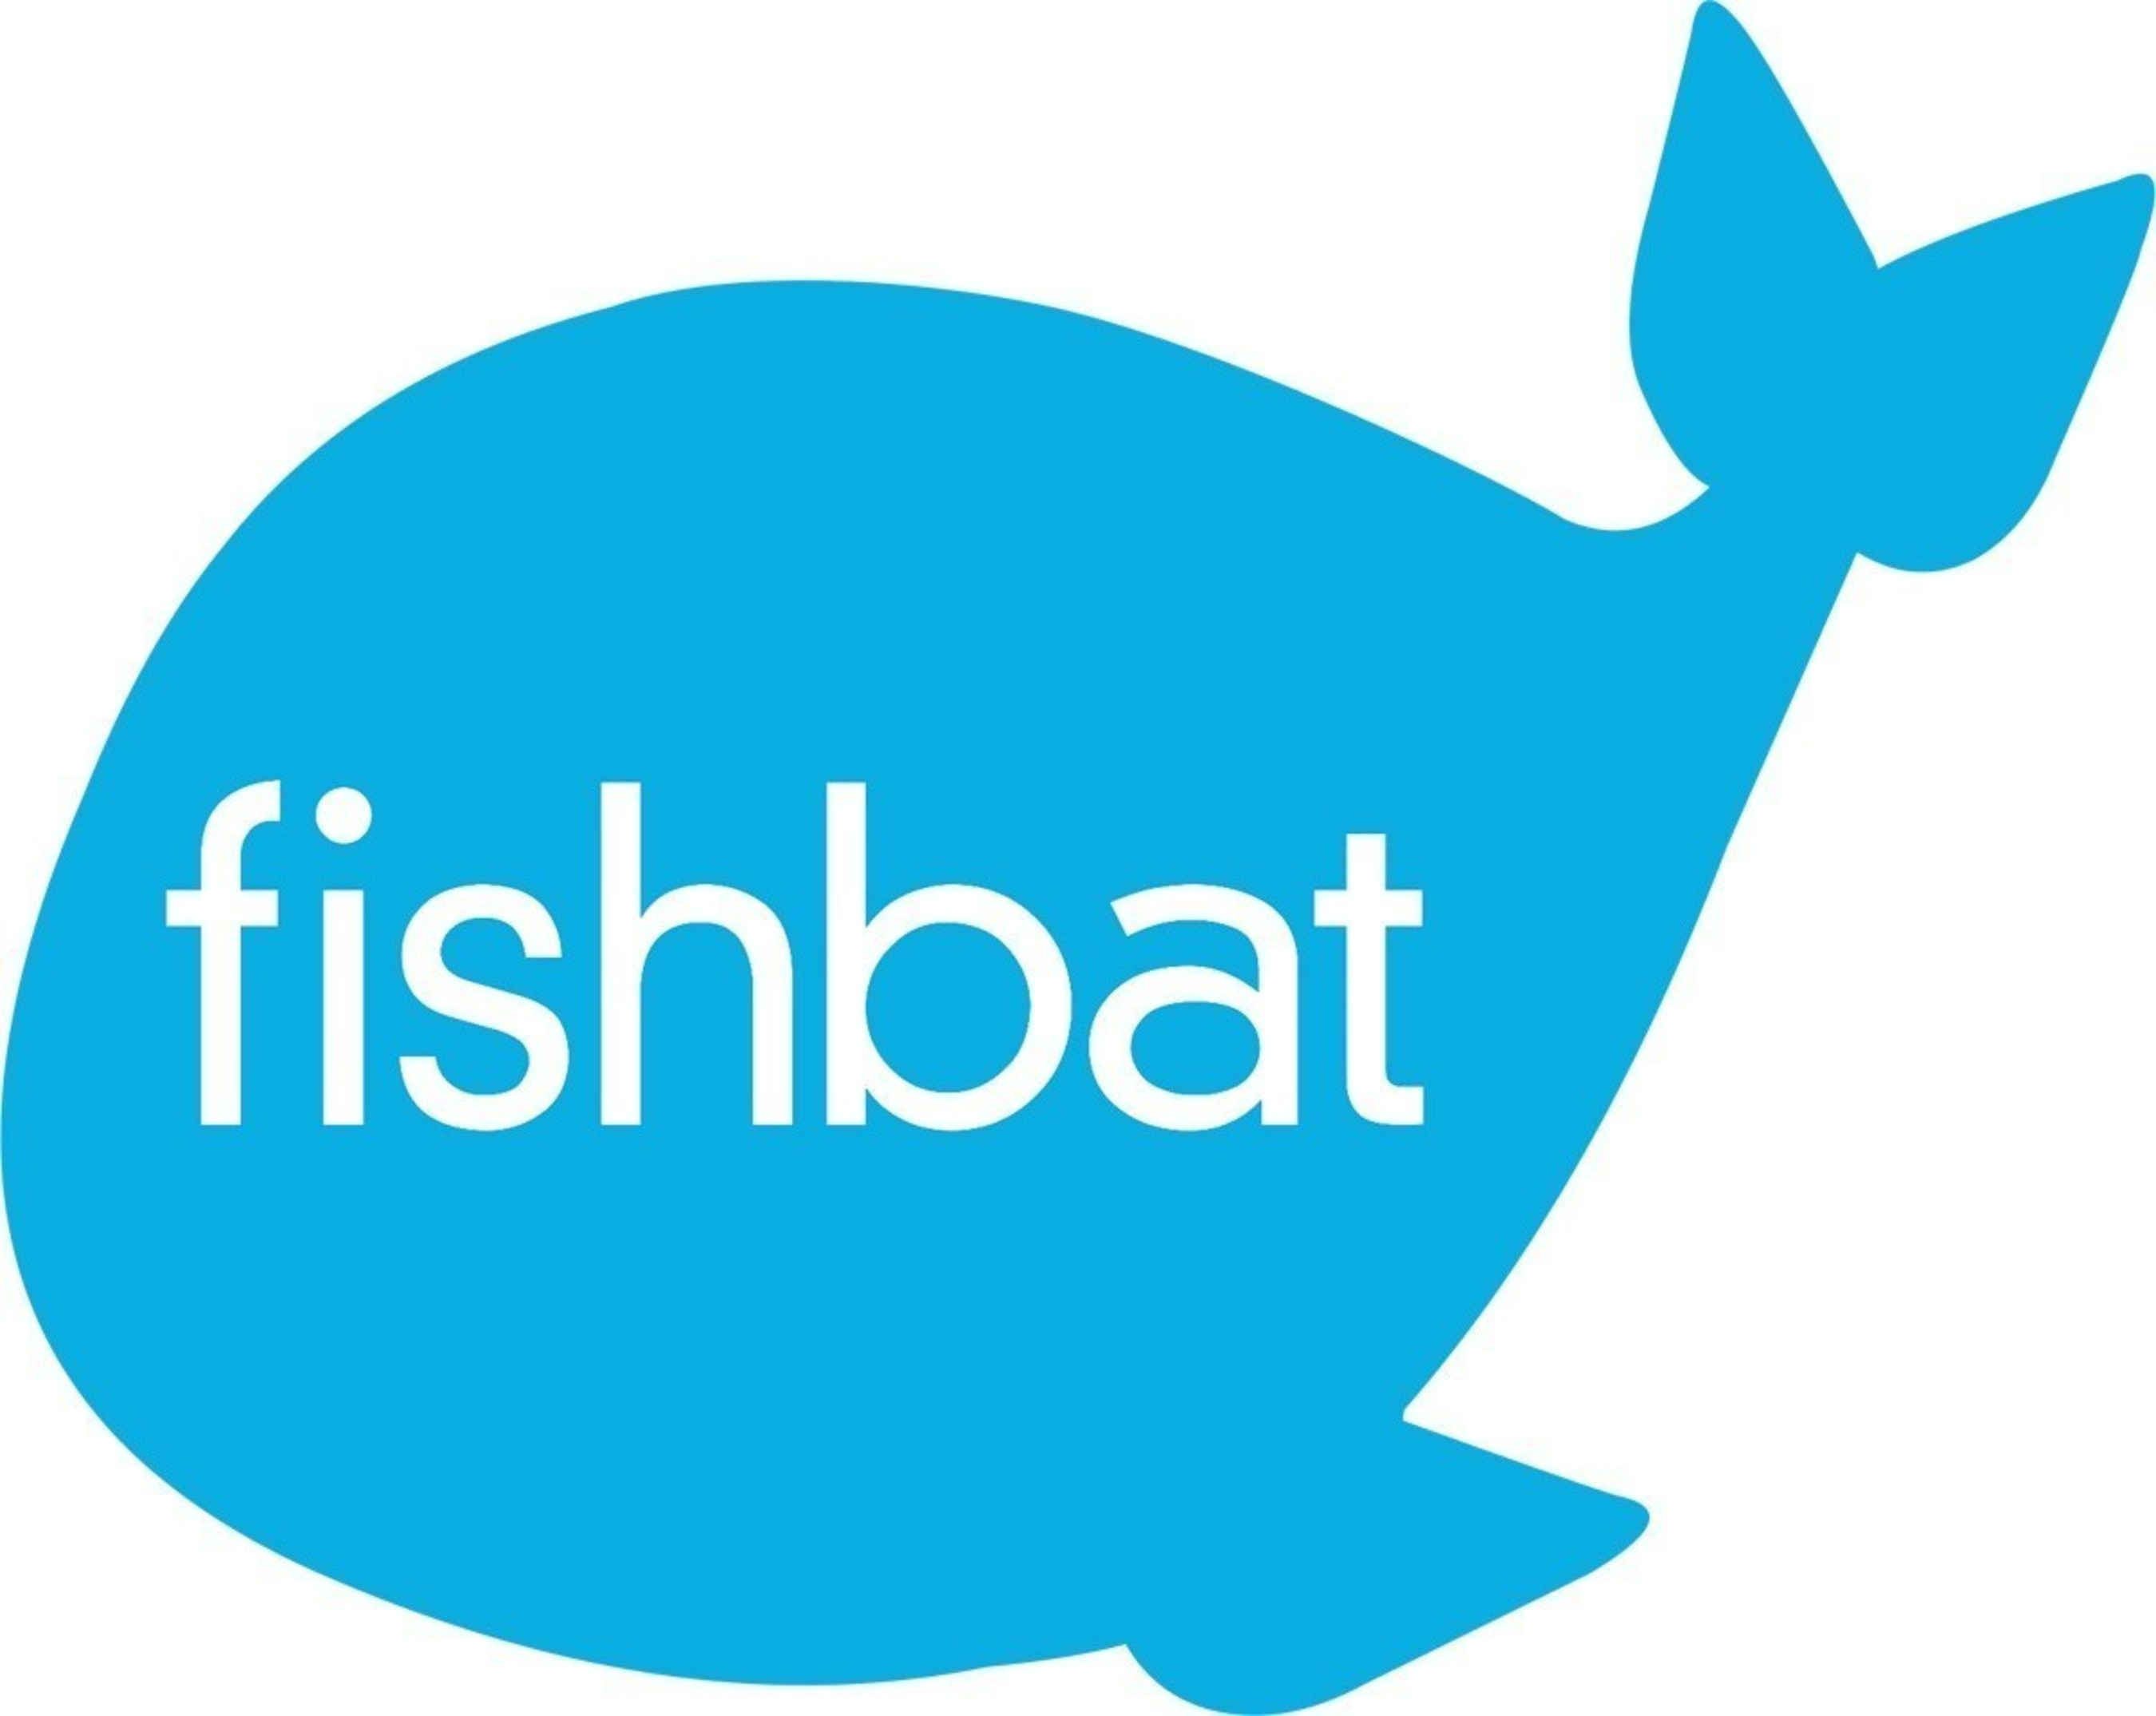 Online Marketing Company fishbat Discusses 3 Features Of Advertising On Instagram